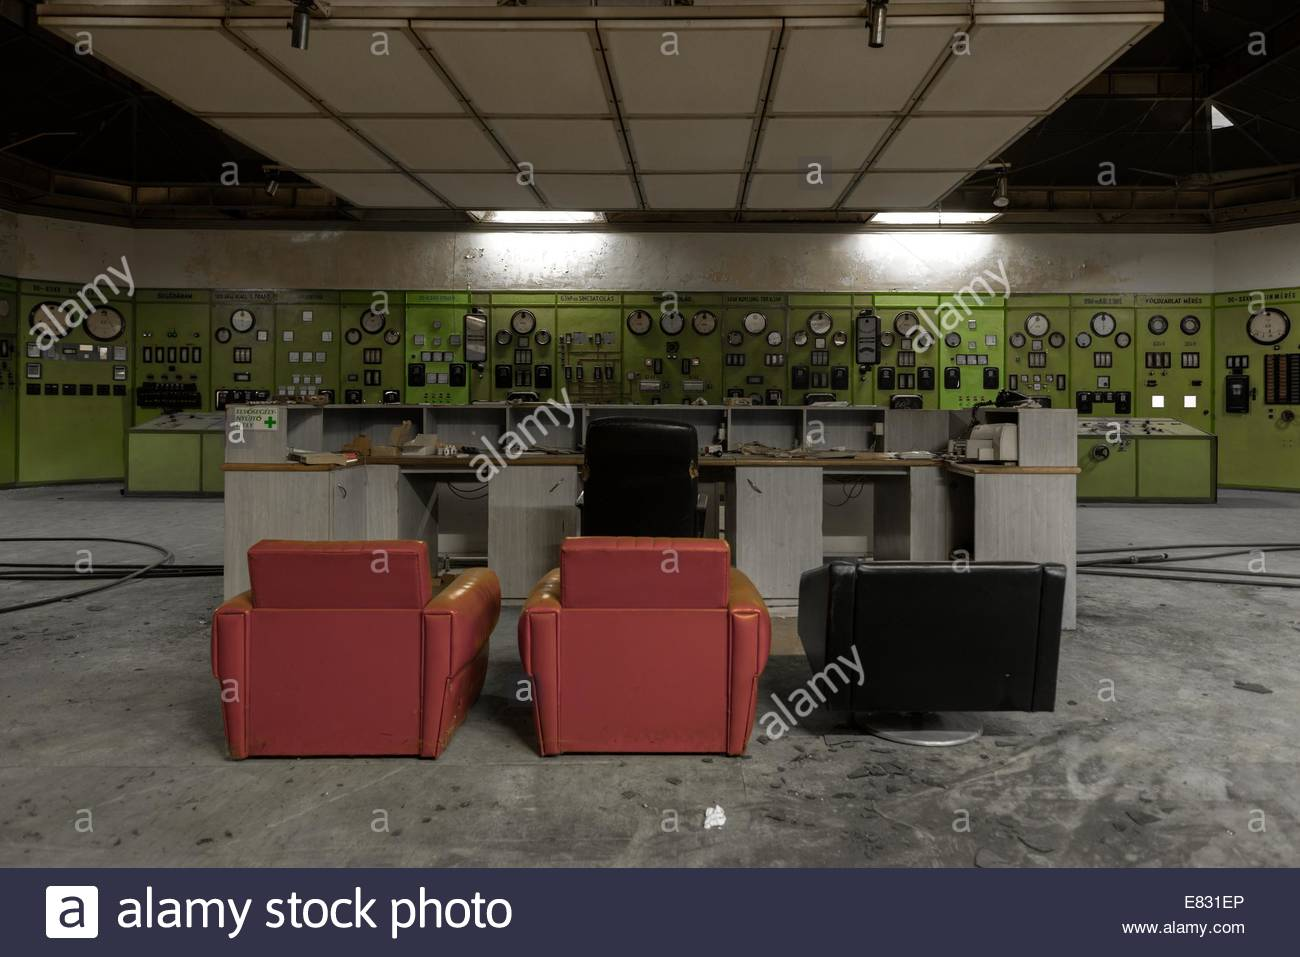 Nuclear reactor in a science institute - Stock Image